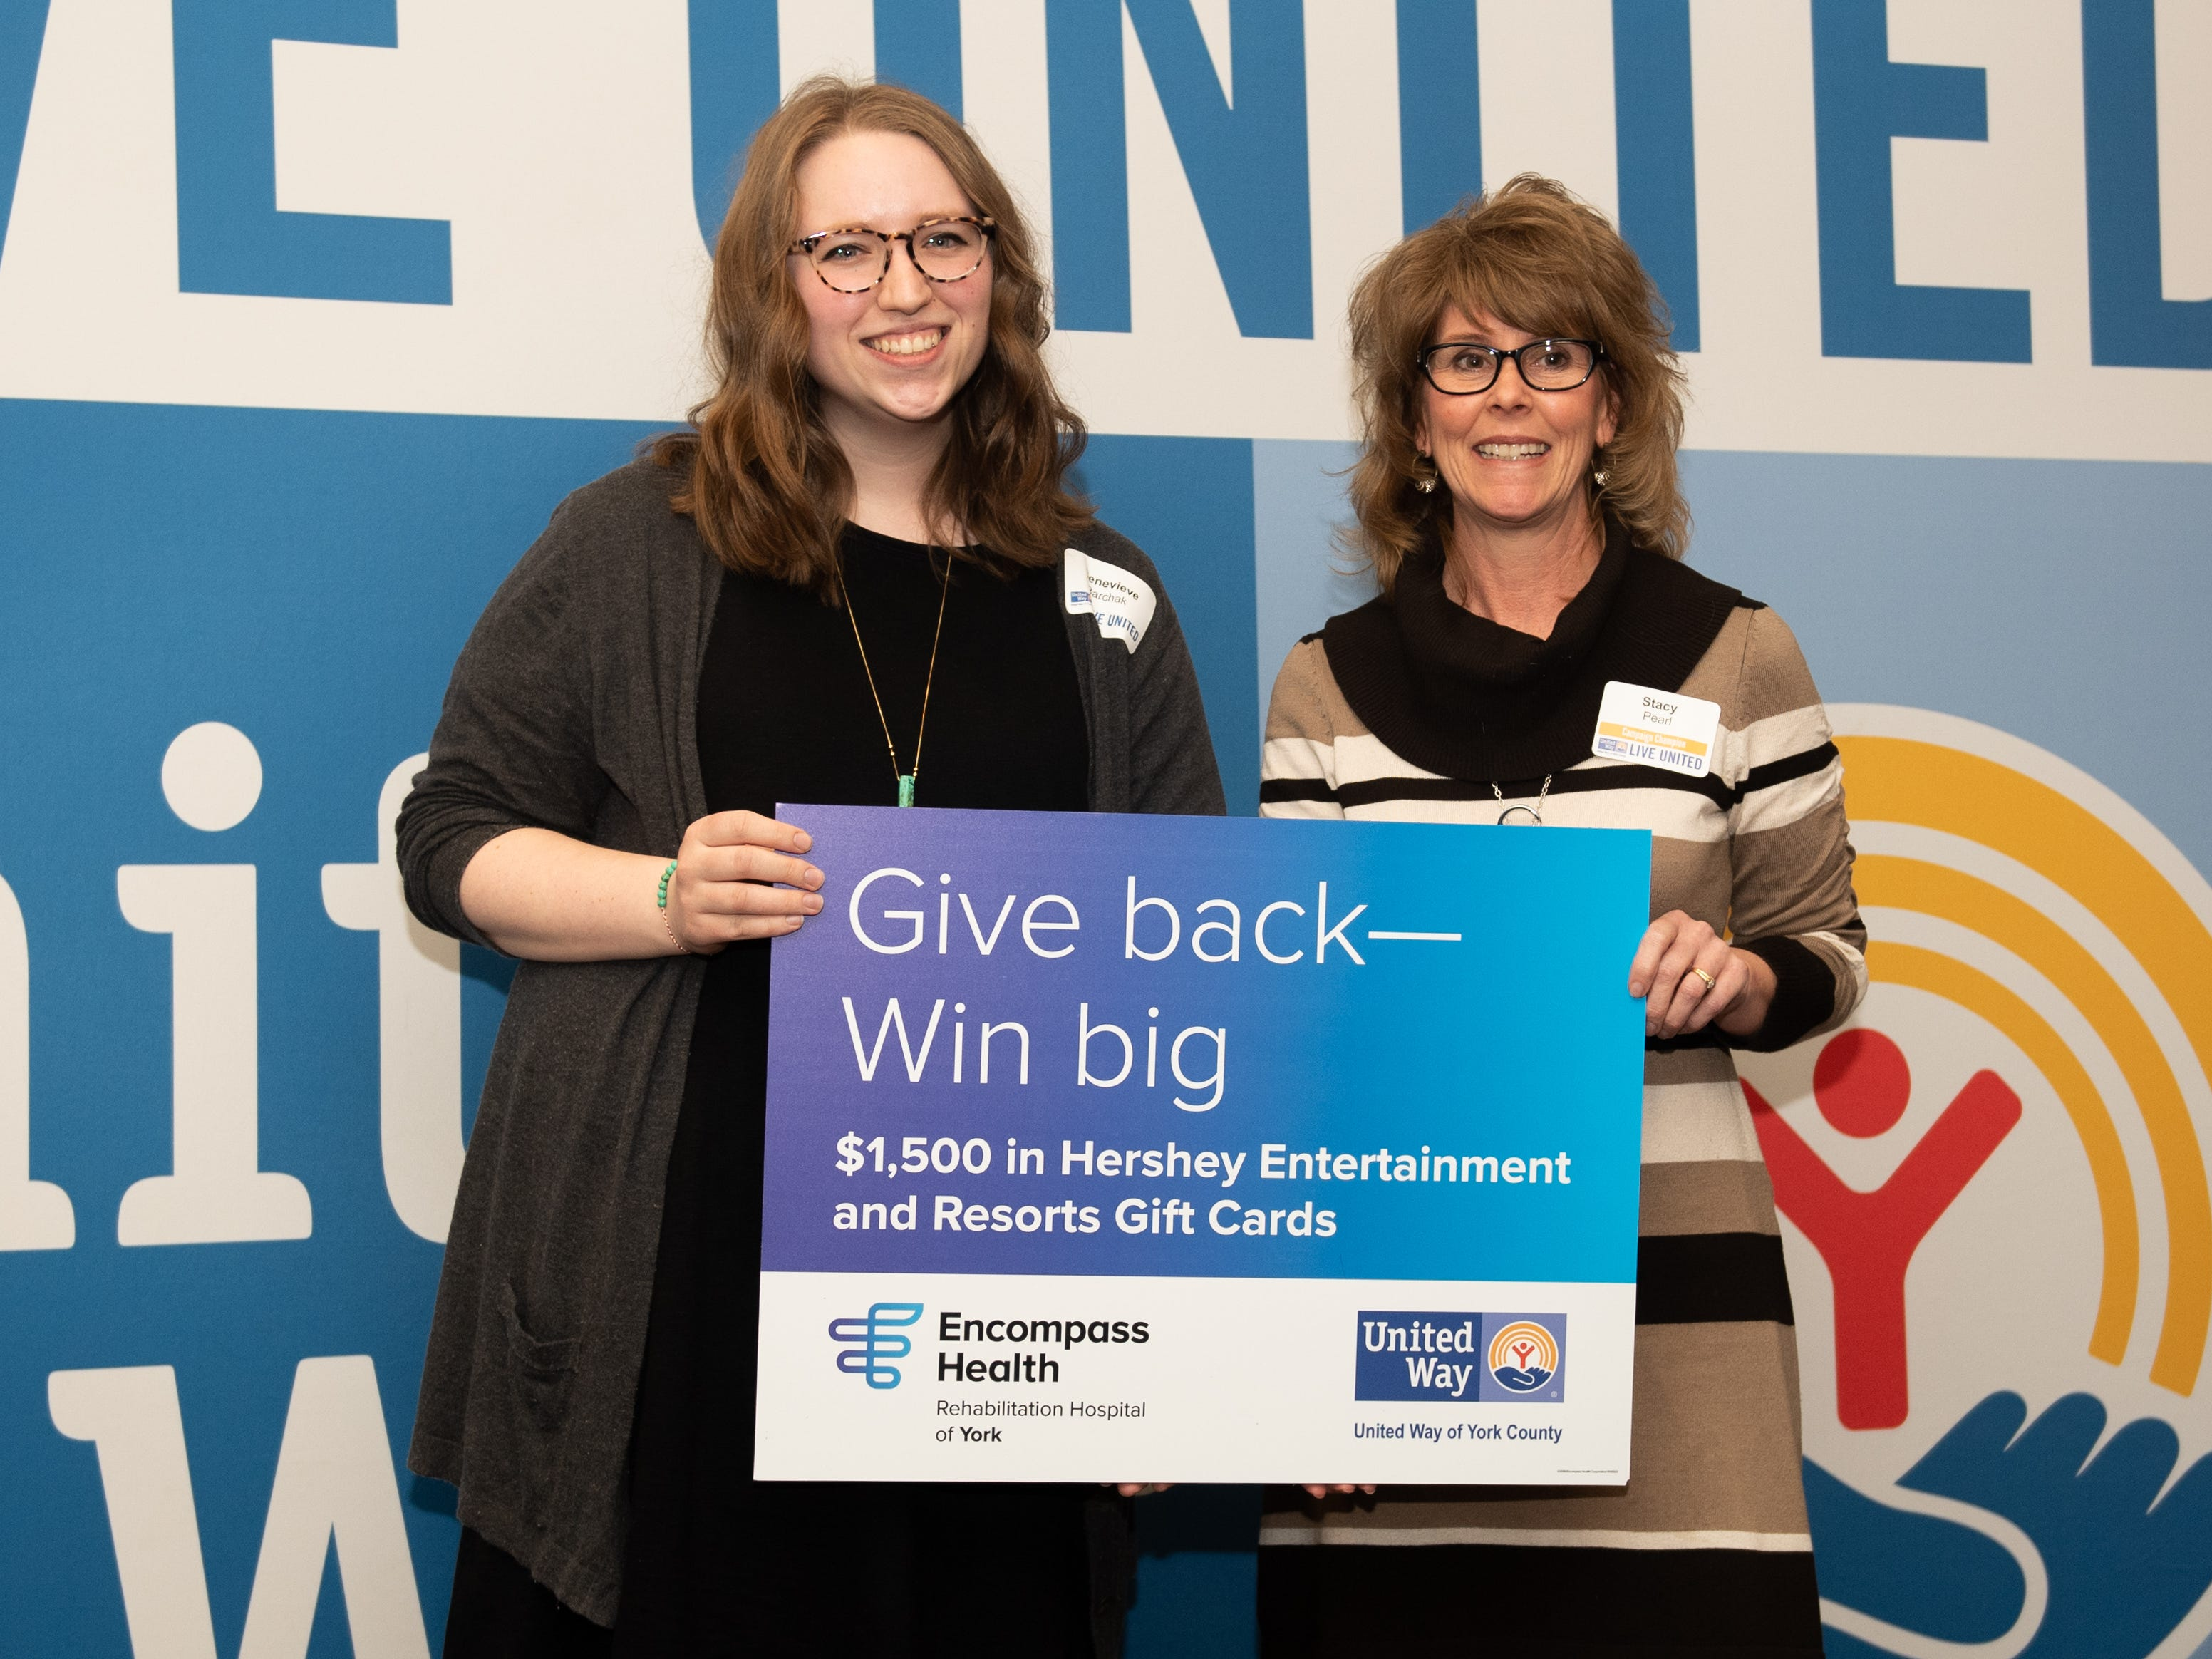 Genevieve Barchak of Leg Up Farm (left) won $1,500 in gift cards toward Hershey Entertainment & Resorts during the 2018 United Way Campaign Celebration, February 7, 2019.